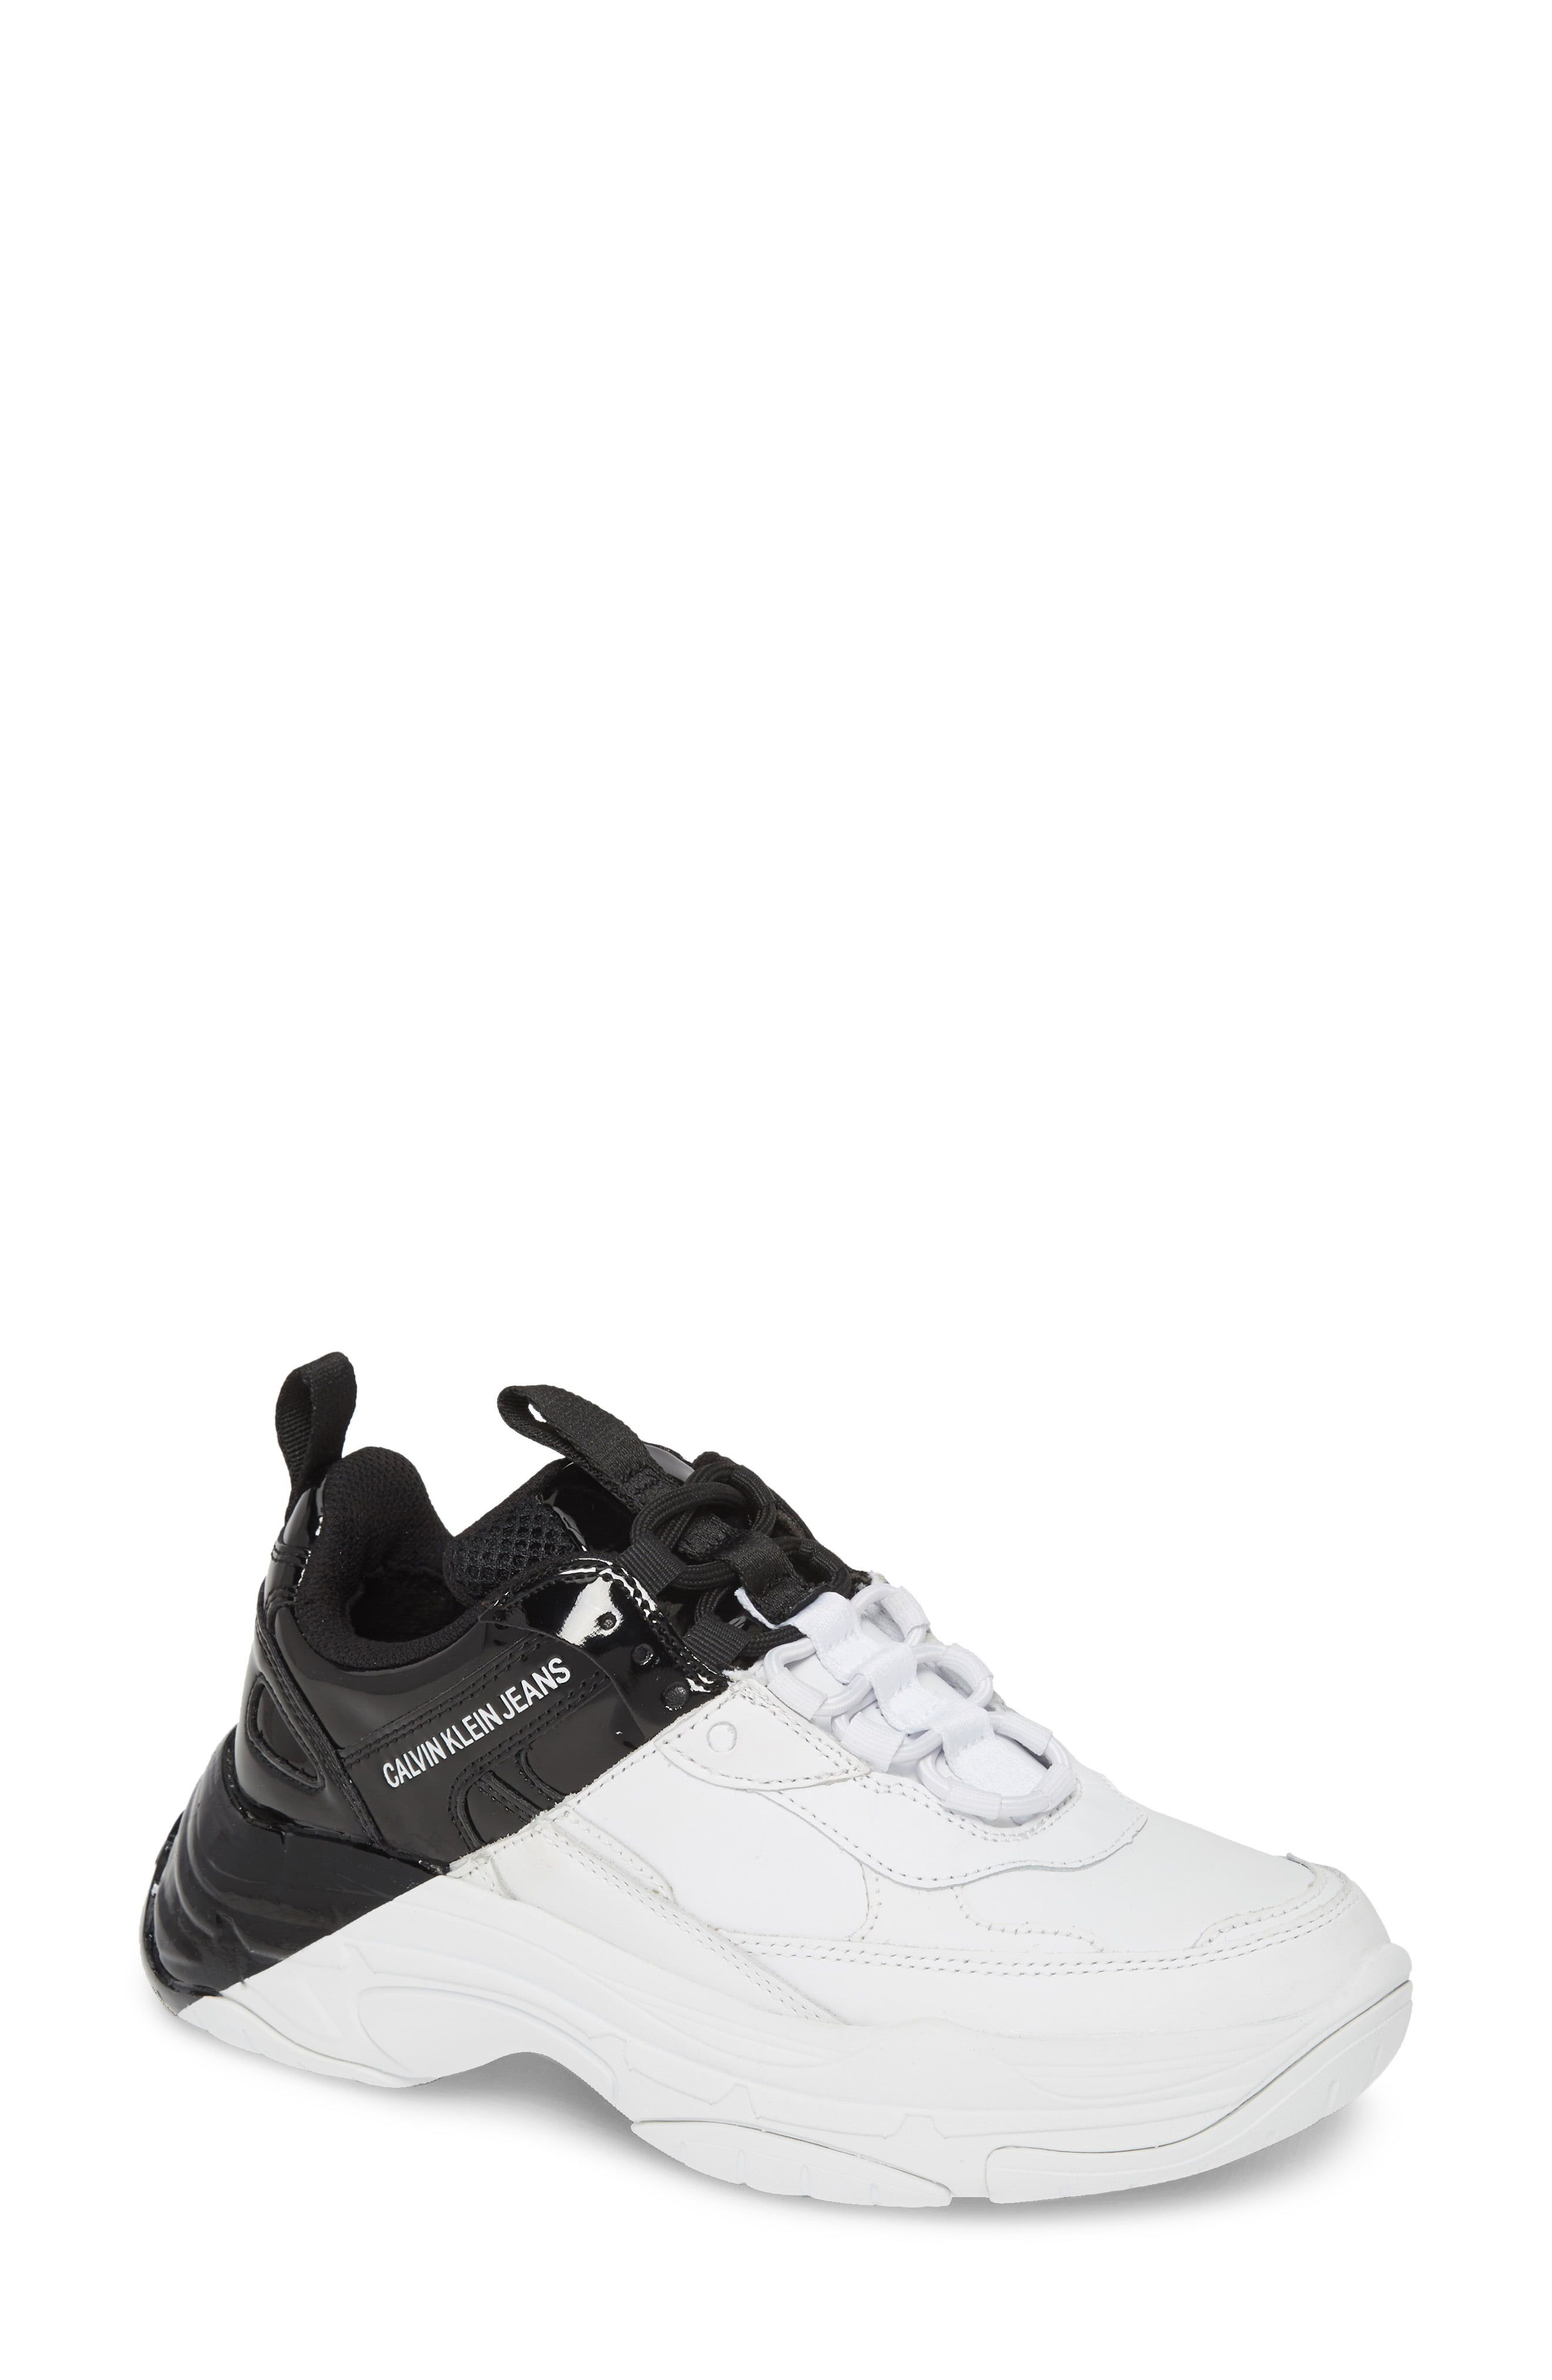 Calvin Klein Marvin Chunky Sneakers In White White Sneakers Outfit White Sneakers Men White Sneakers